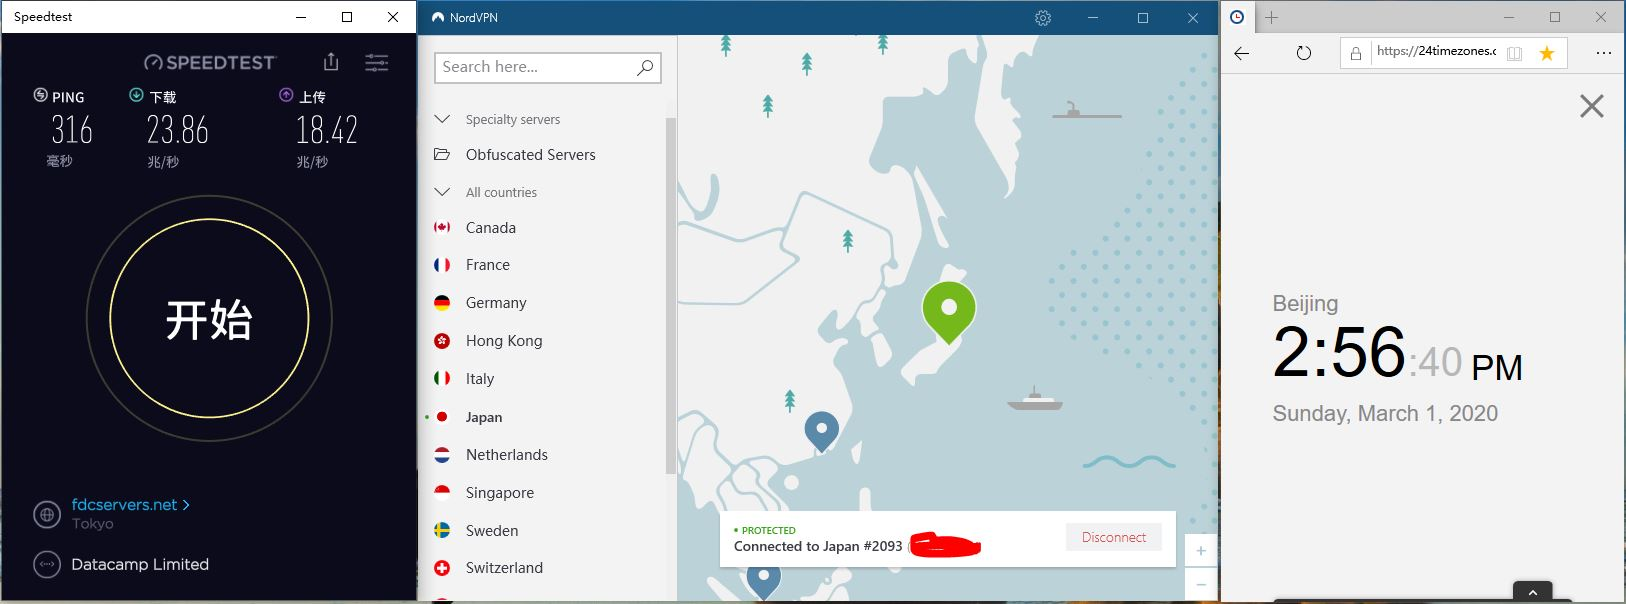 Windows10 NordVPN Japan #2093 中国VPN翻墙 科学上网 SpeedTest测速 - 20200301